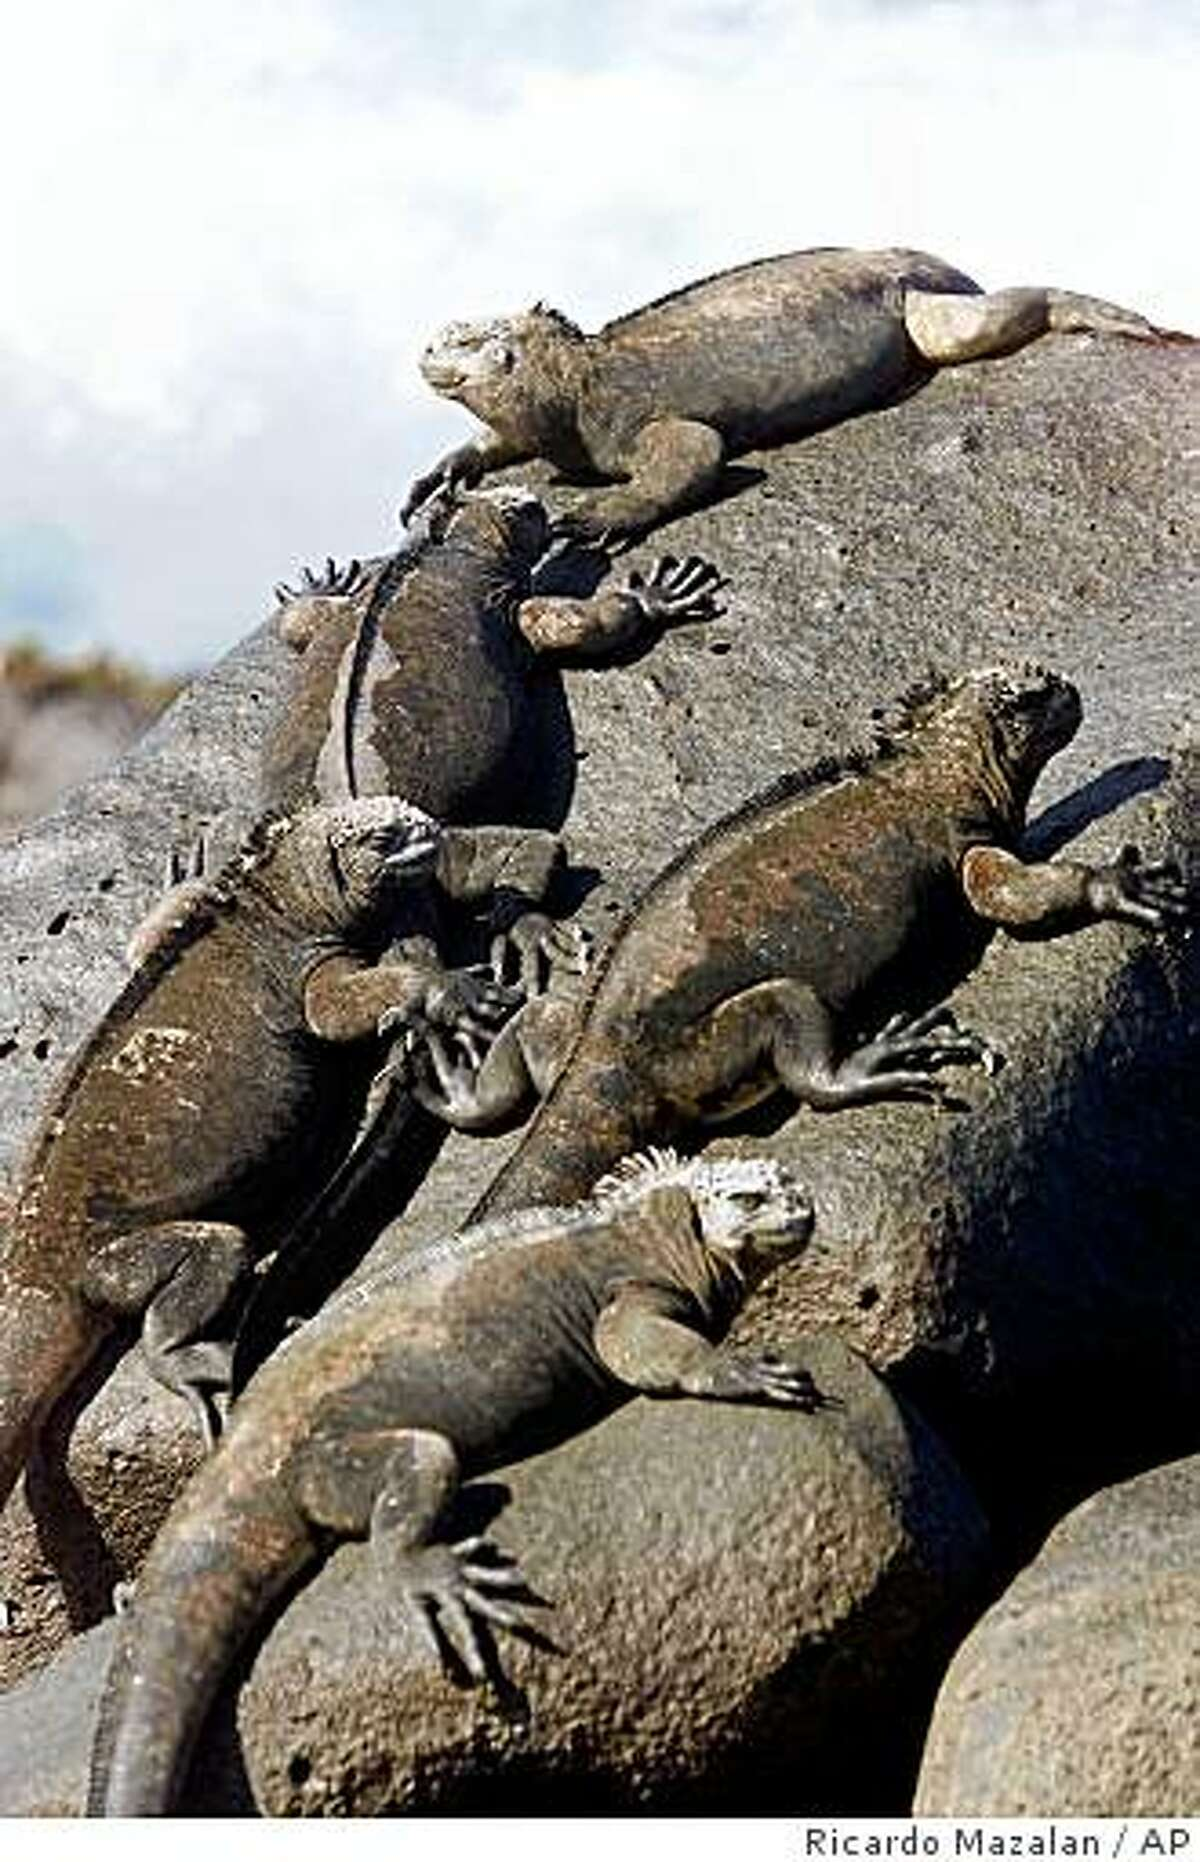 Marine iguanas sunbathe on the volcanic rocks of Loberia Beach on San Cristobal Island in the Galapagos Archipelago, in this Thursday, Jan. 25, 2001 file photo. As many as 15,000 marine iguanas died on a Galapagos island in the year after a January 2001 oil spill, say scientists who blame trace amounts of the fuel. Naturalists initially believed that the unique Galapagos ecosystem that inspired Charles Darwin's theory of evolution largely escaped damage from the spill. (AP Photo/Ricardo Mazalan)